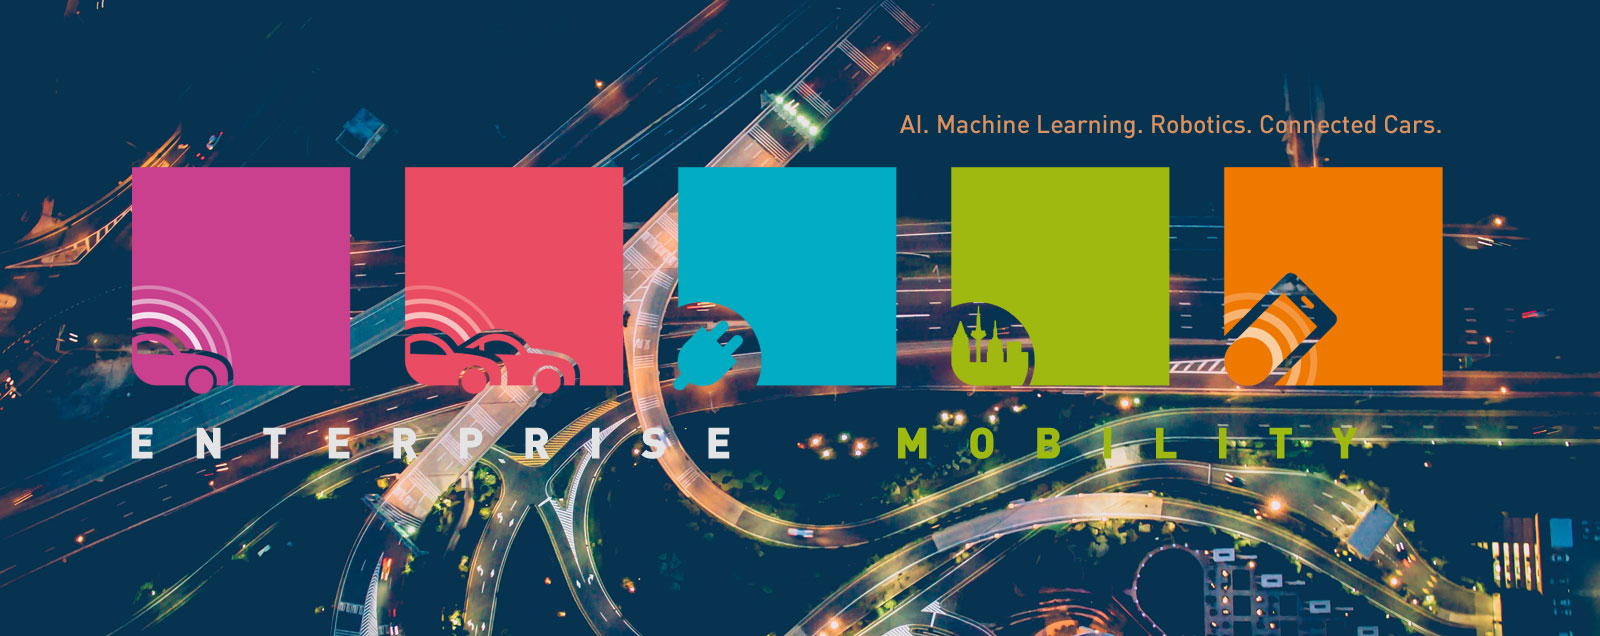 Enterprise Mobility UAE - Expertise in AI, Machine Learning, Robotics and Connected Cars